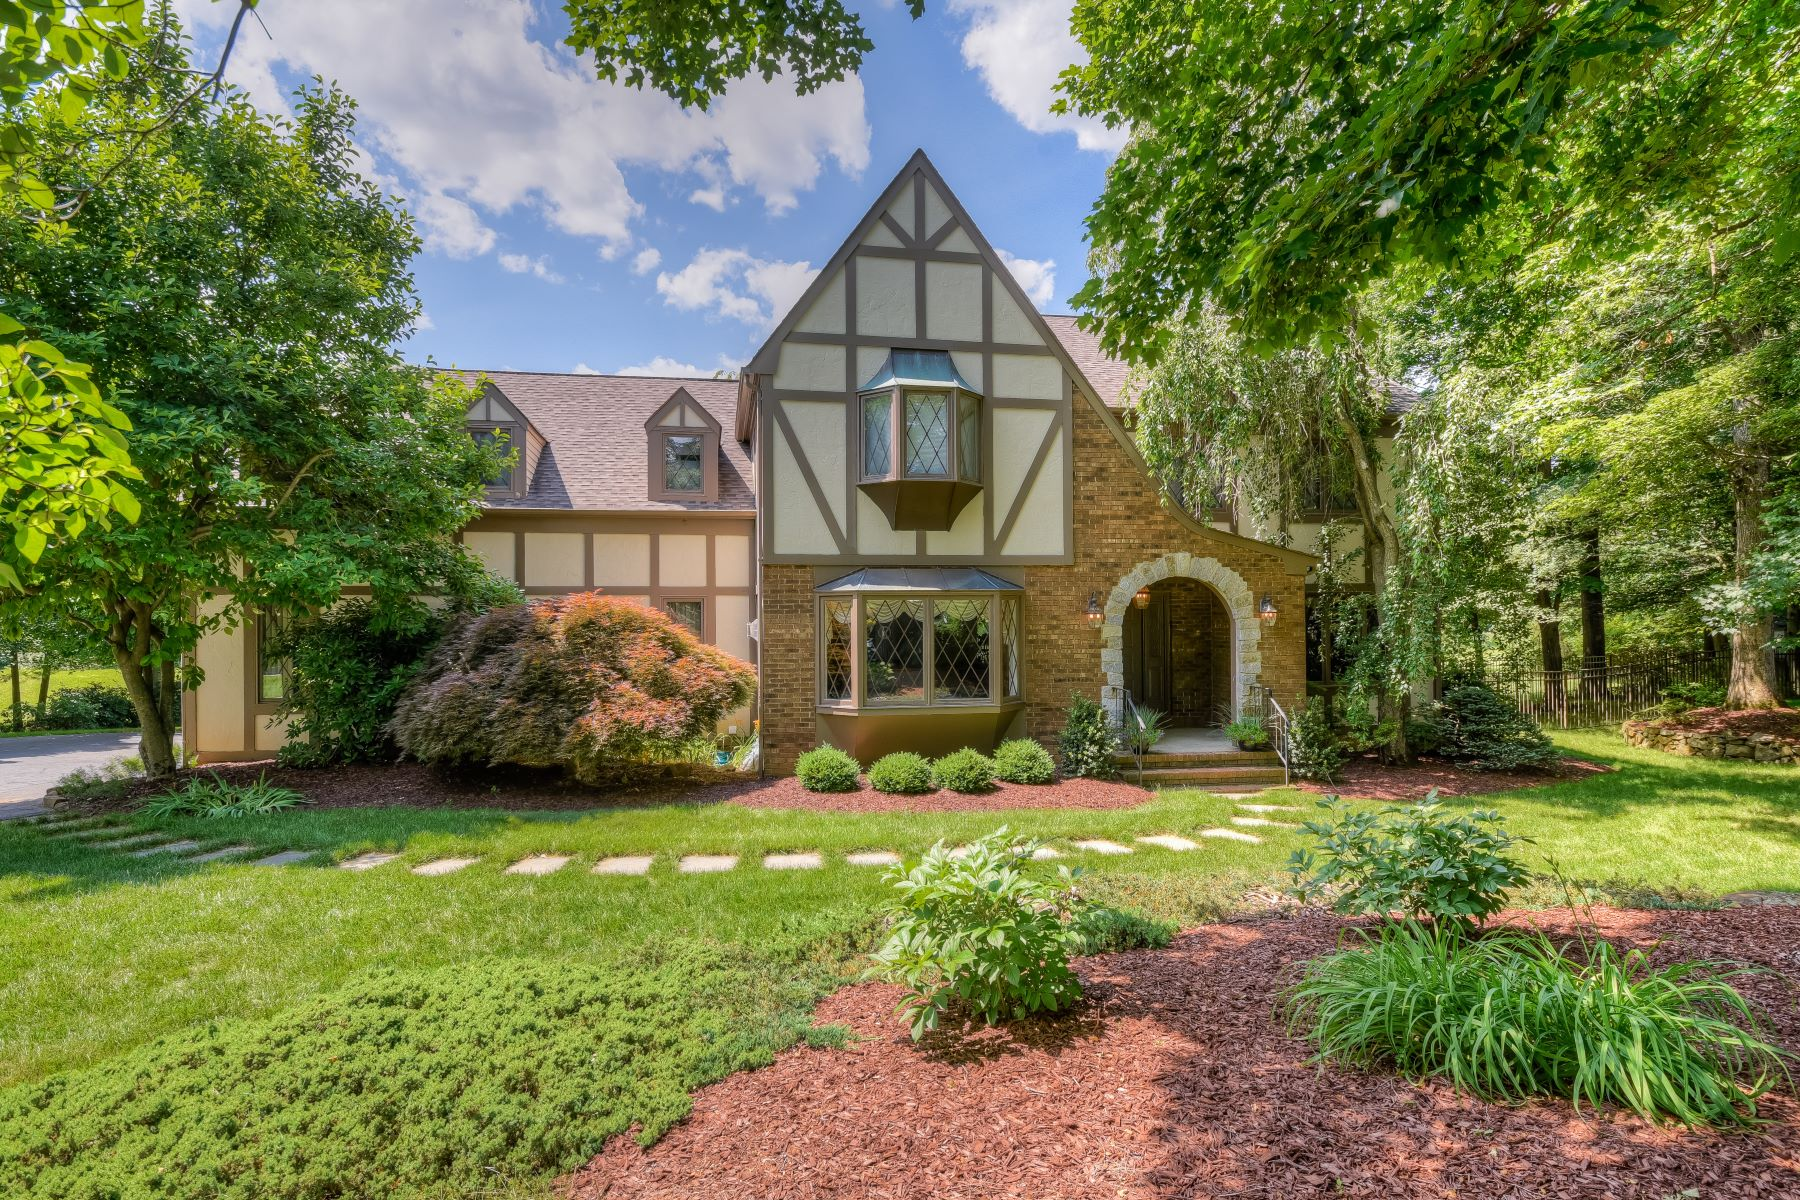 House for Sale at Inviting Home 15 Joanna Court Basking Ridge, New Jersey 07920 United States